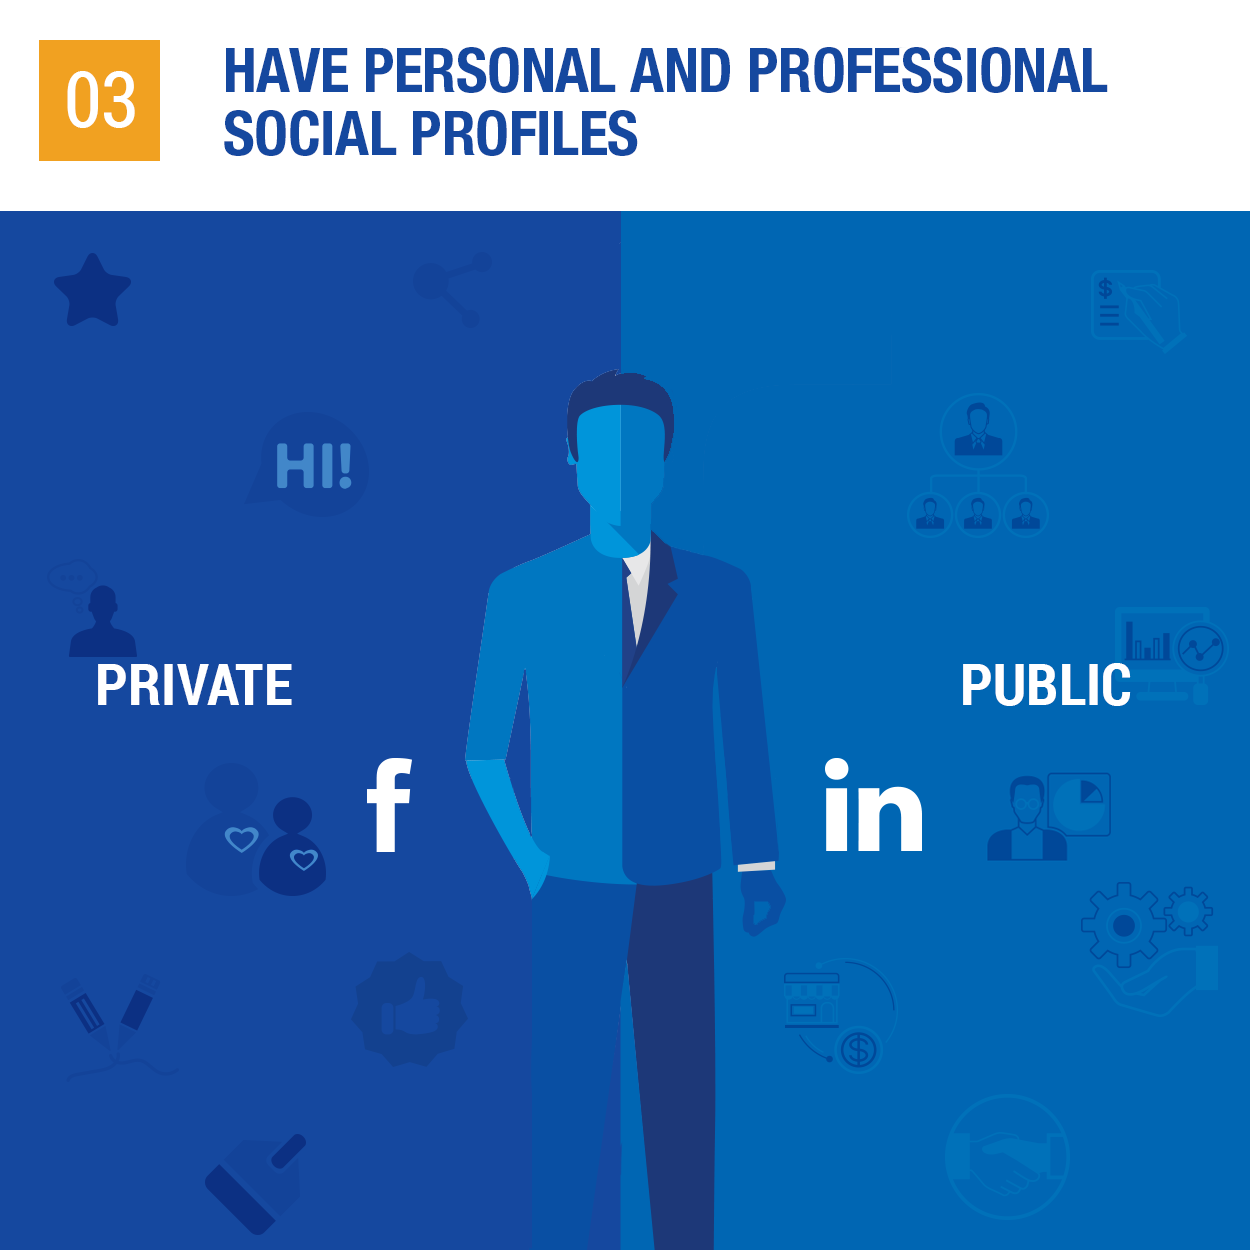 Have personal and professional social profiles